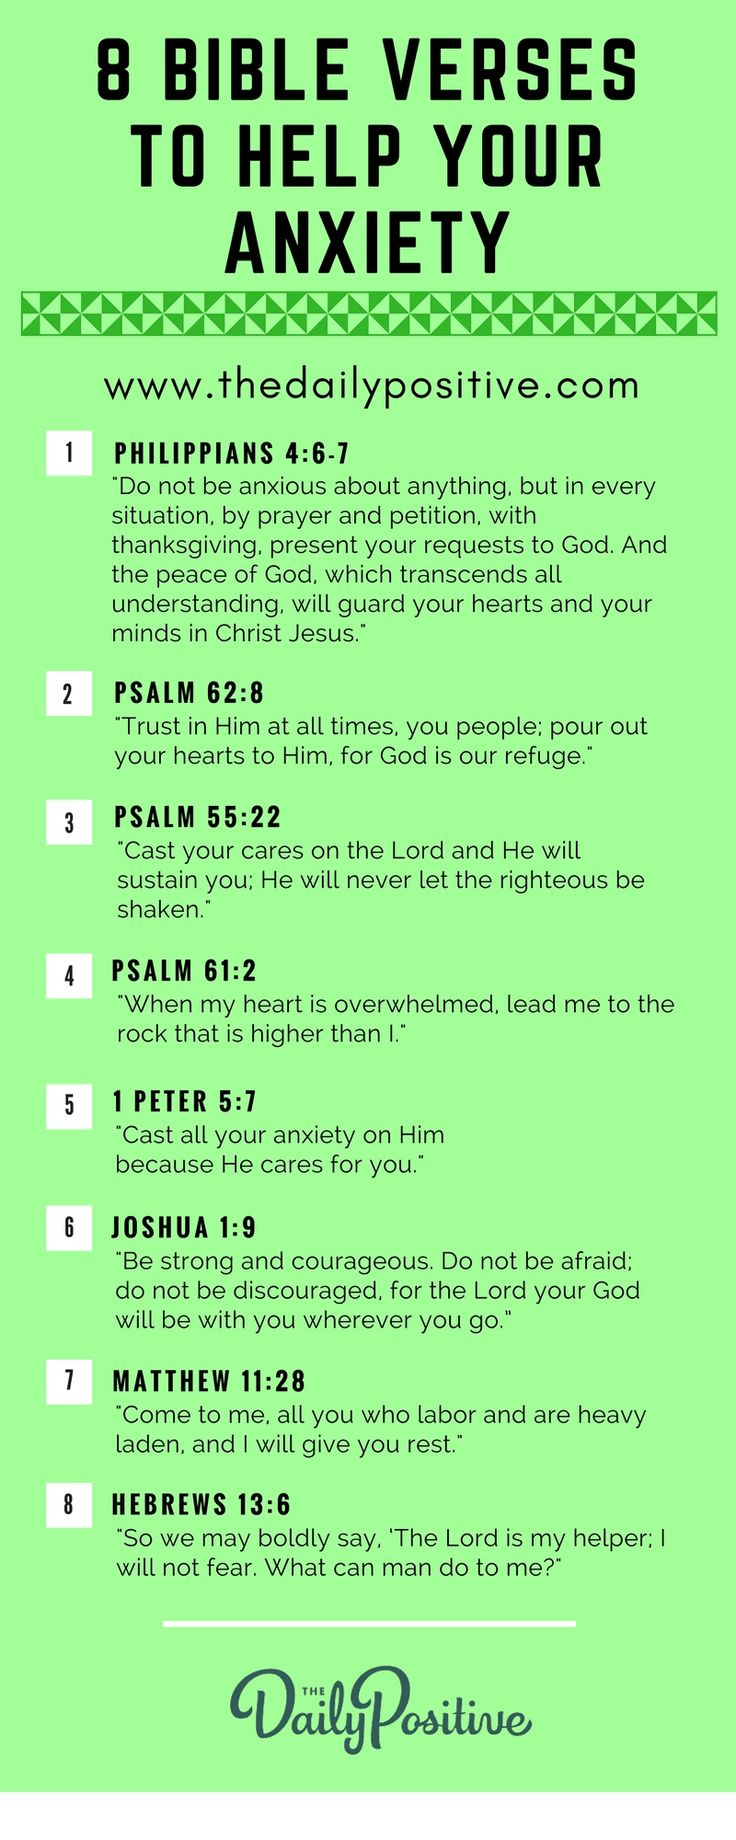 8 Scriptures to Help with Anxiety